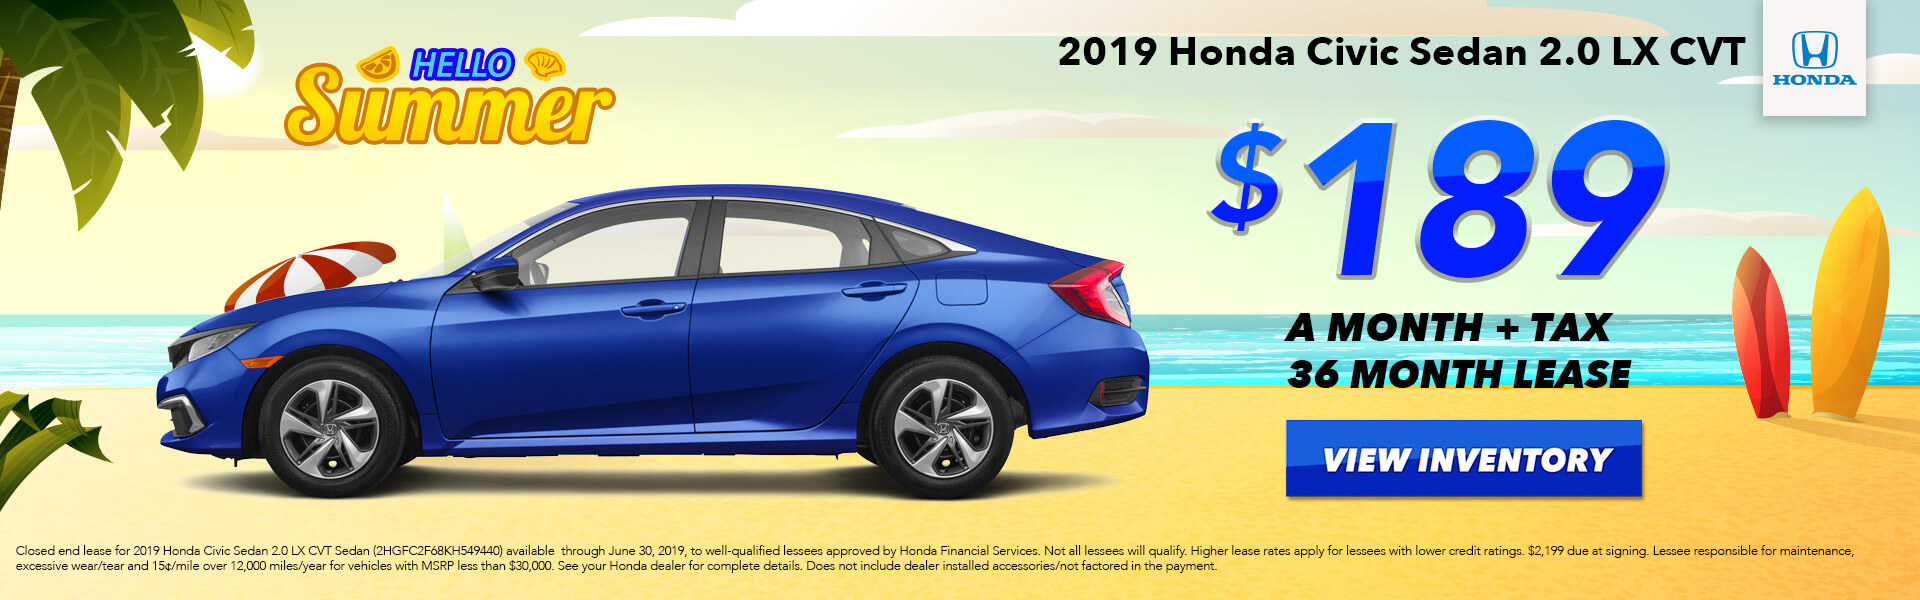 Honda Dealership Orange County >> Honda Dealer Serving The Inland Empire Moreno Valley Corona